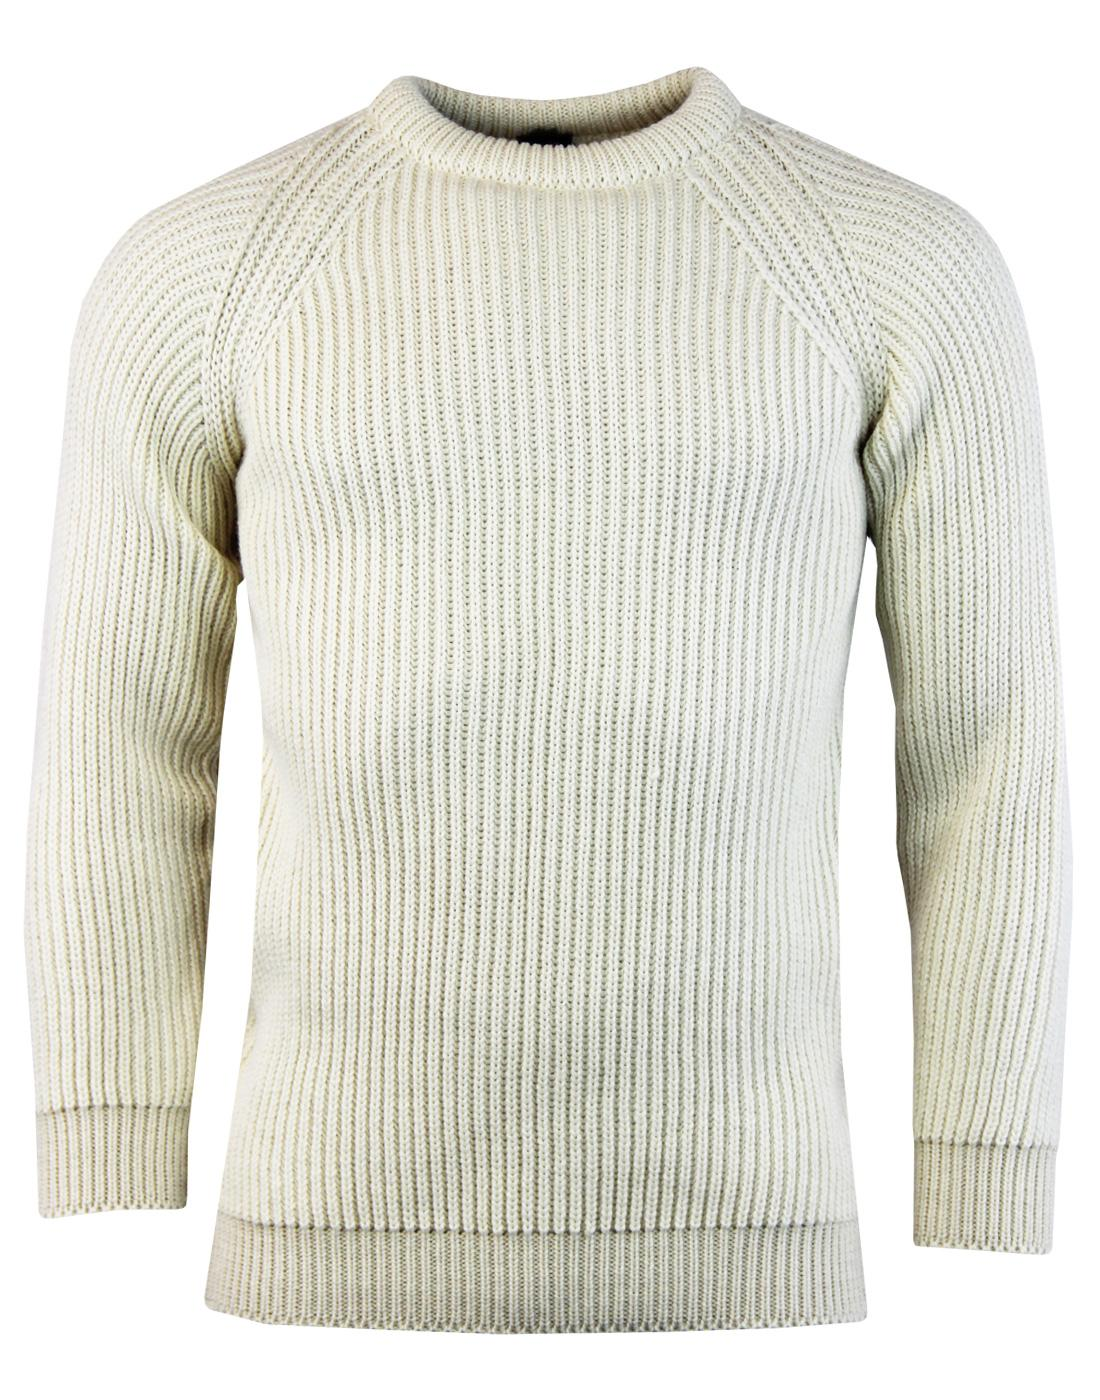 GLOVERALL Made in England Retro Fisherman Jumper